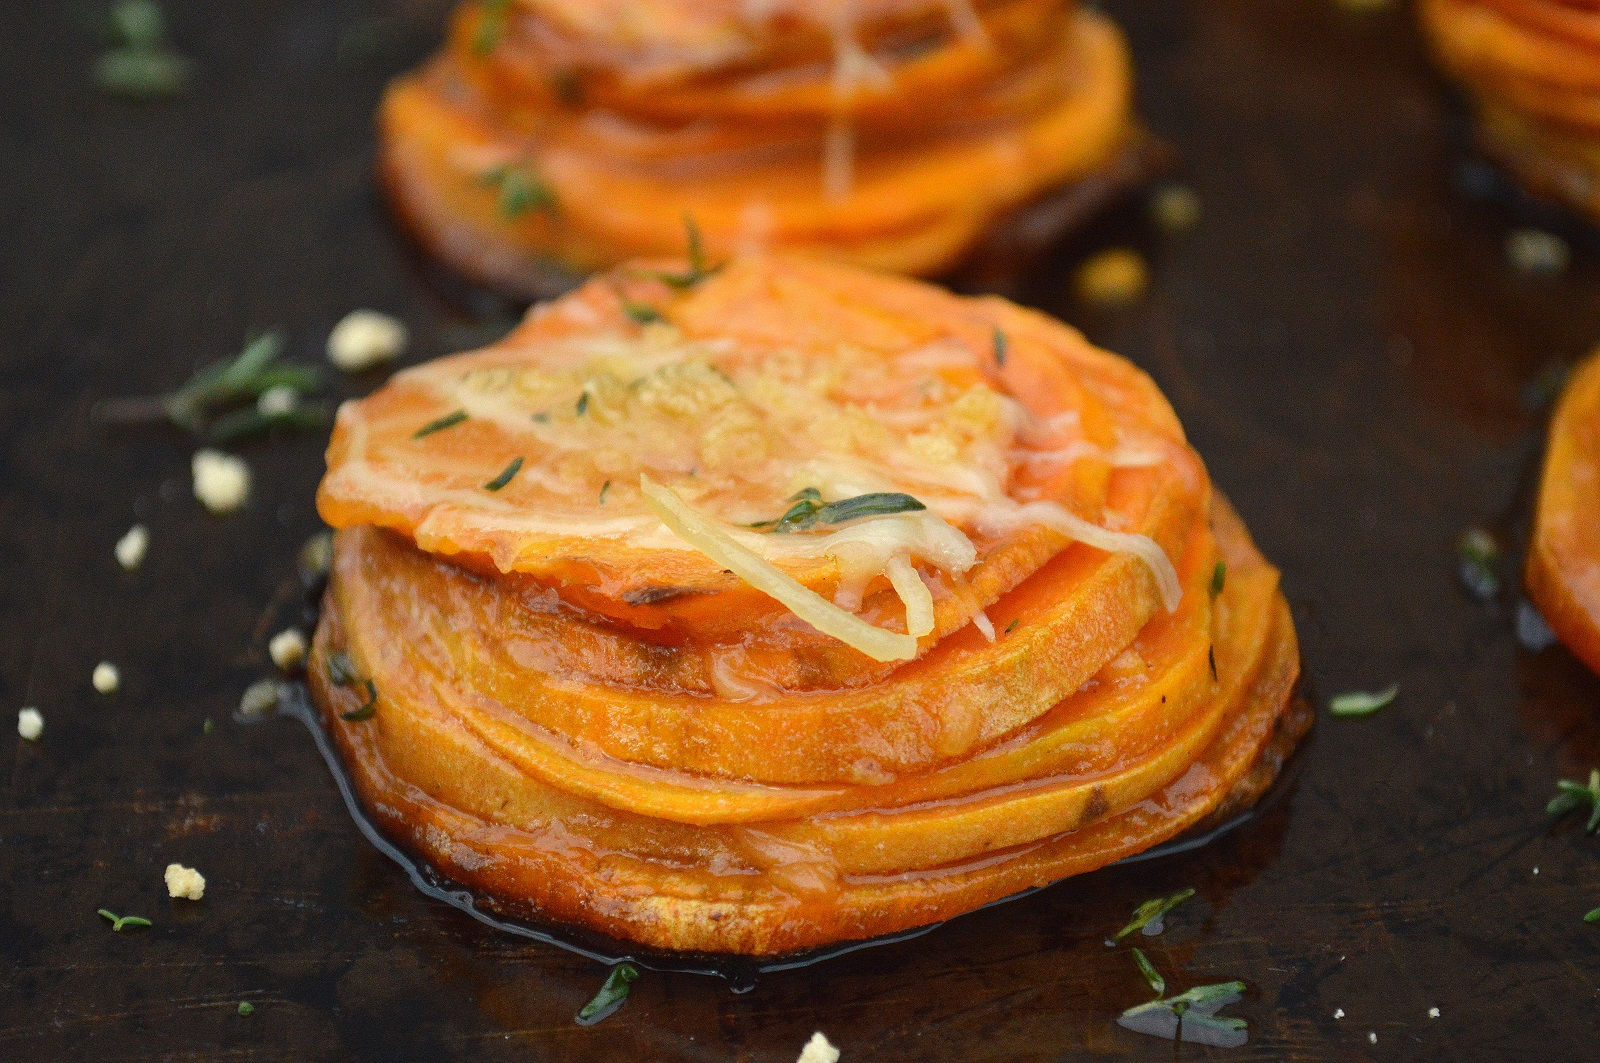 Maple Sweet Potato Stacks - Pretty, delicious and easier to make than you think! Plus they are lighter than a casserole, yet full of flavor